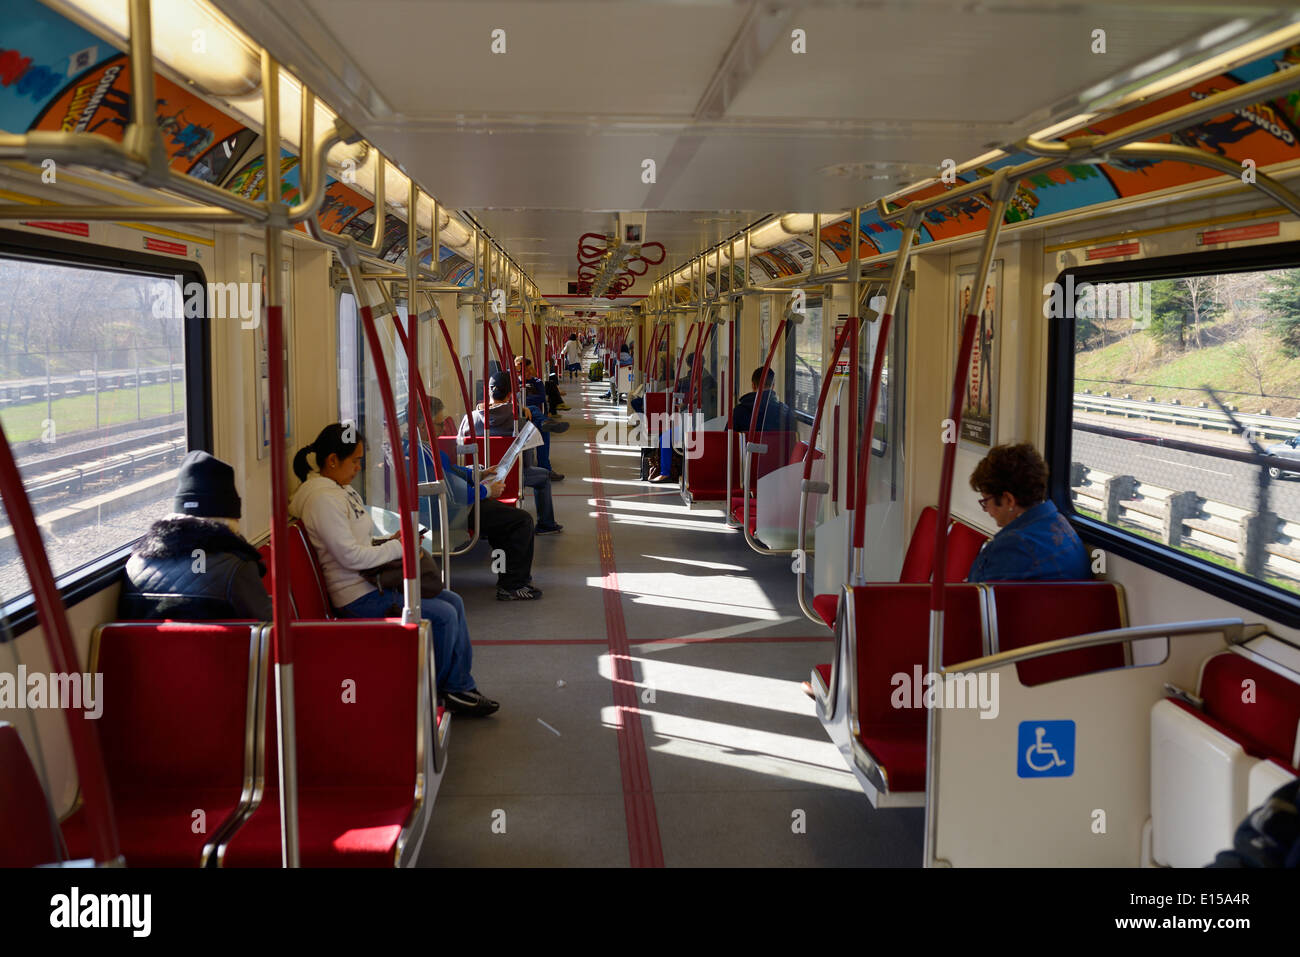 new ttc subway cars with open interior gangways called the toronto stock photo royalty free. Black Bedroom Furniture Sets. Home Design Ideas